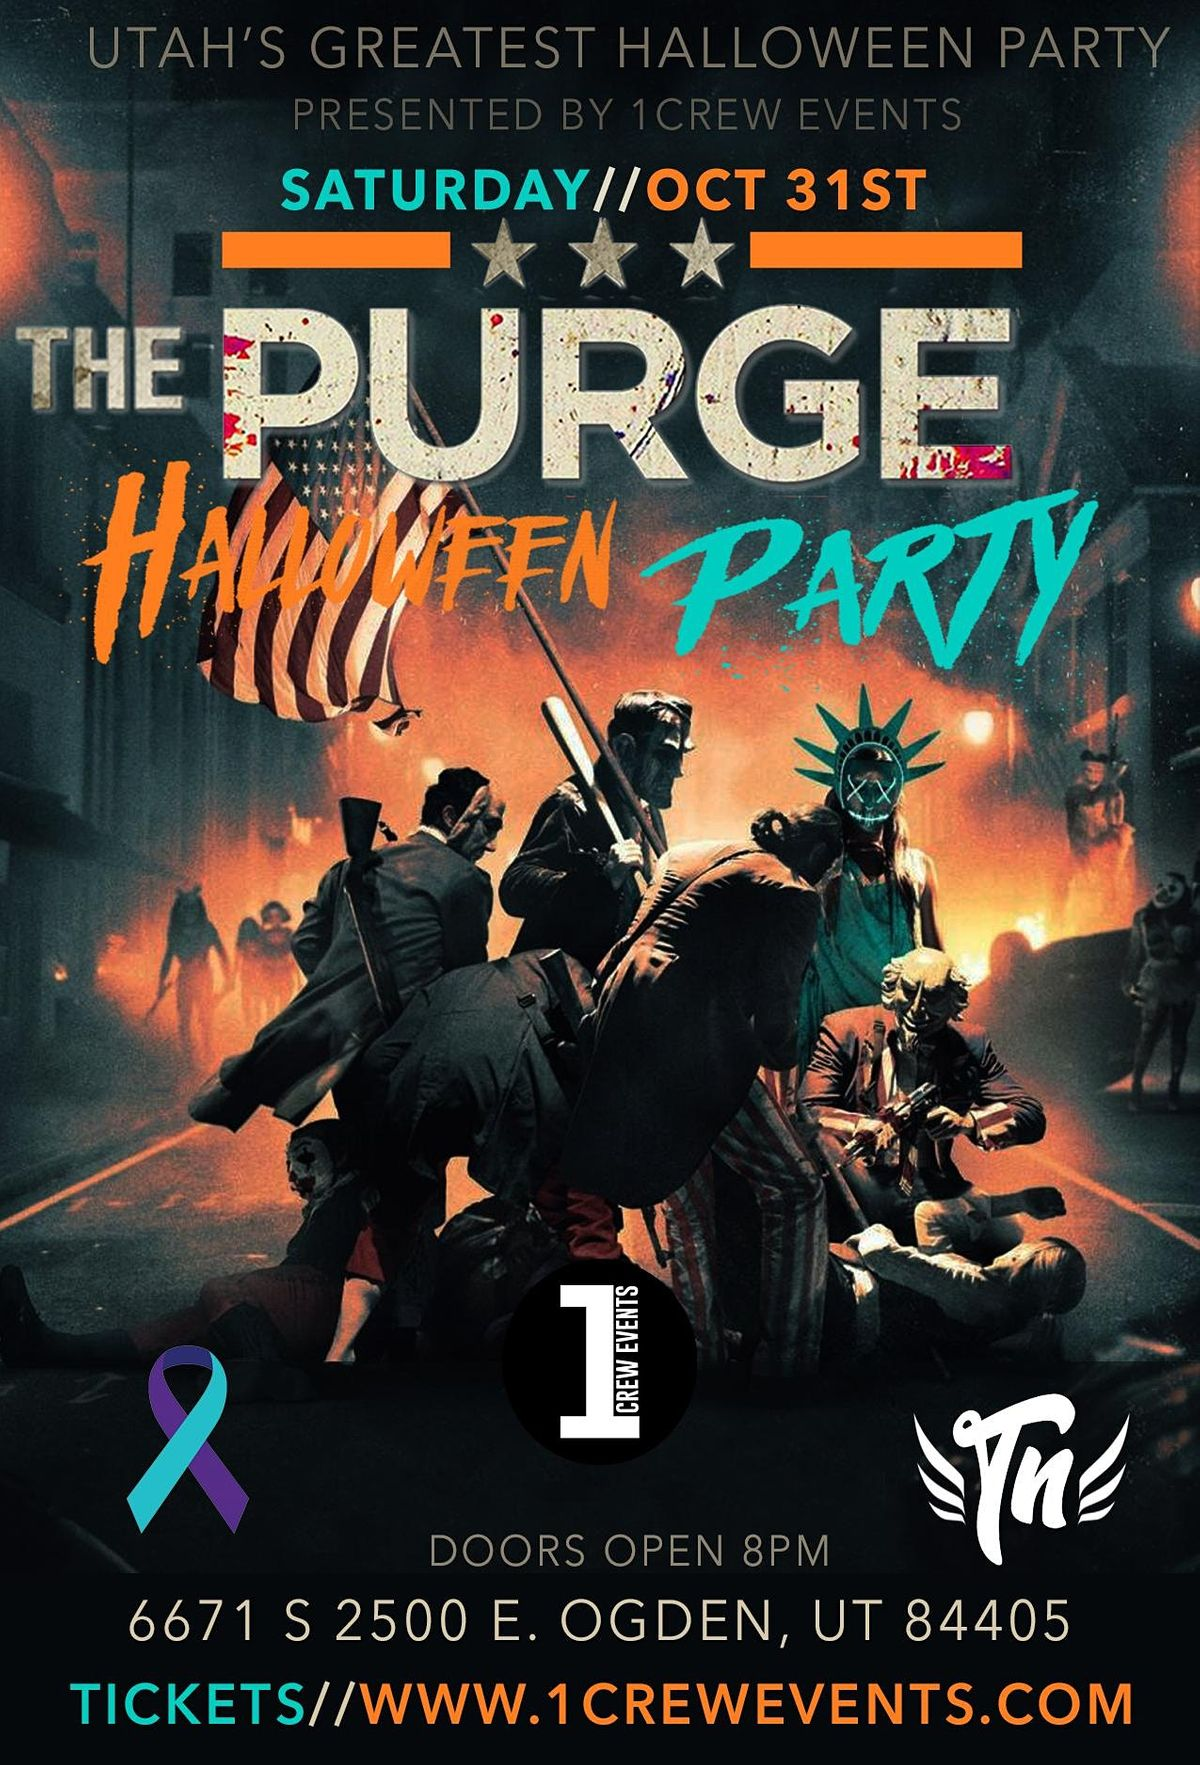 Halloween Party Oct 31, 2020 Near Me The Purge Halloween Party, Sat Oct 31 2020 at 08:00 pm